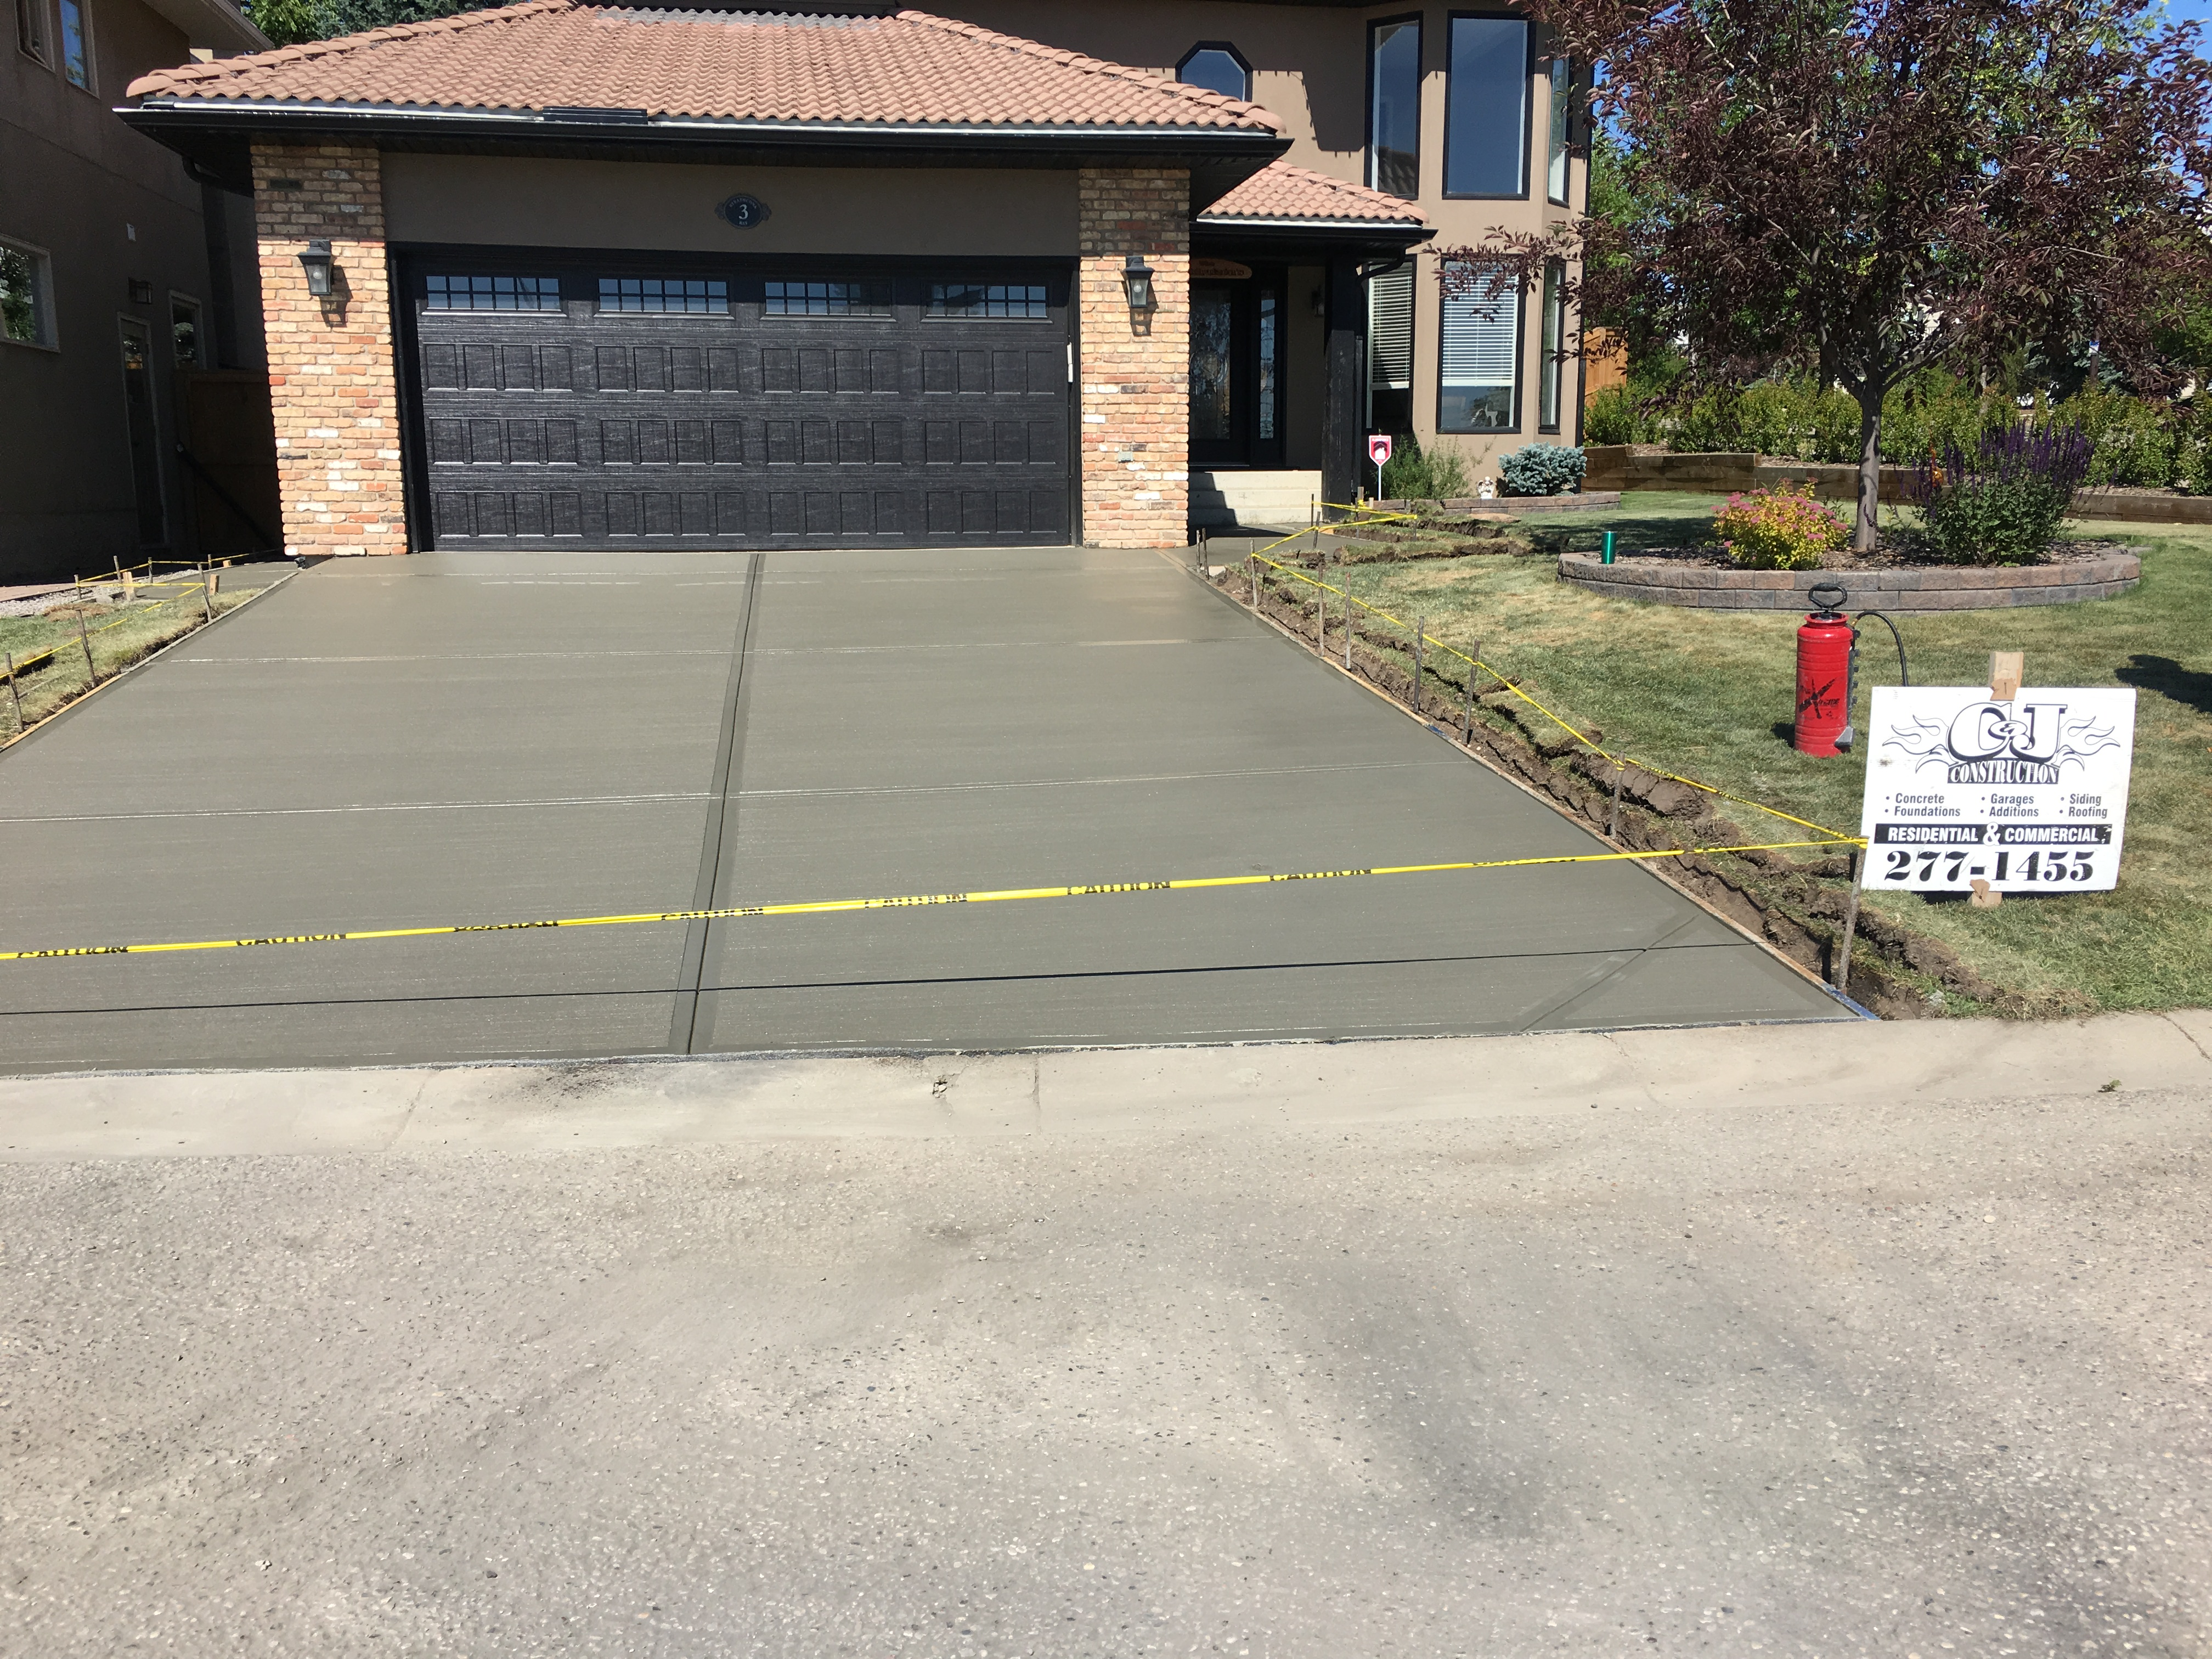 CandJ Construction Driveway Builder in Calgary